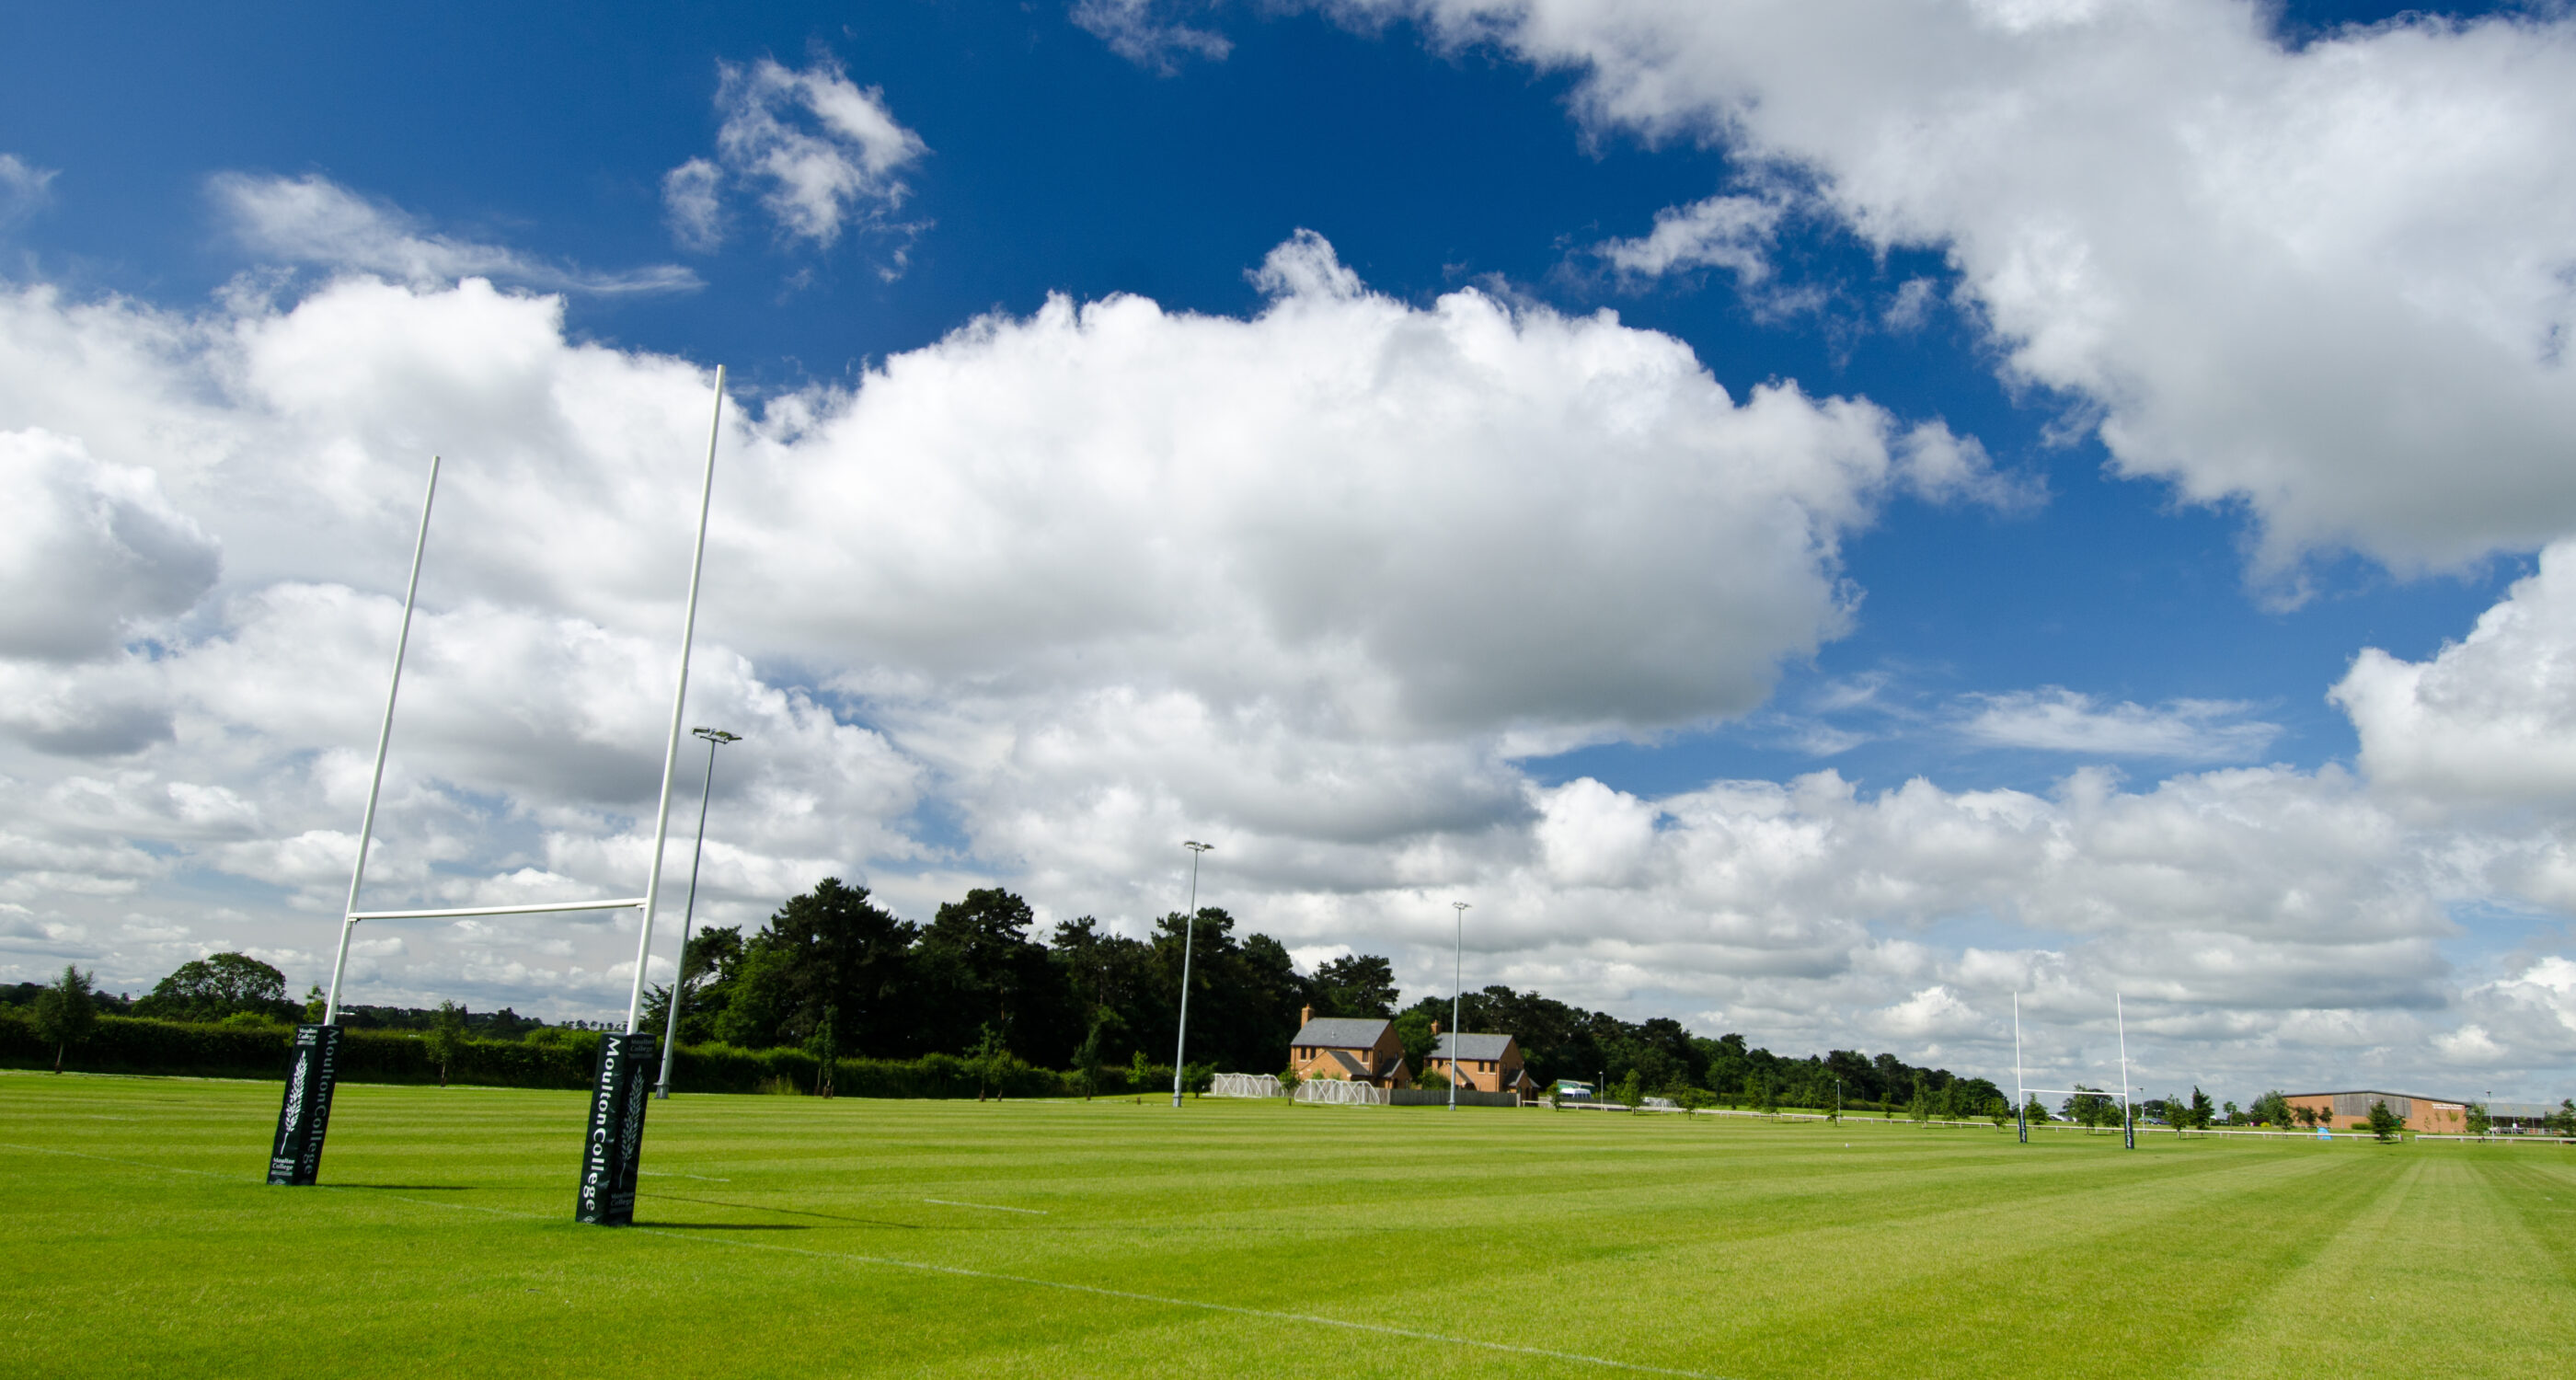 Pitsford Rugby Pitch 02